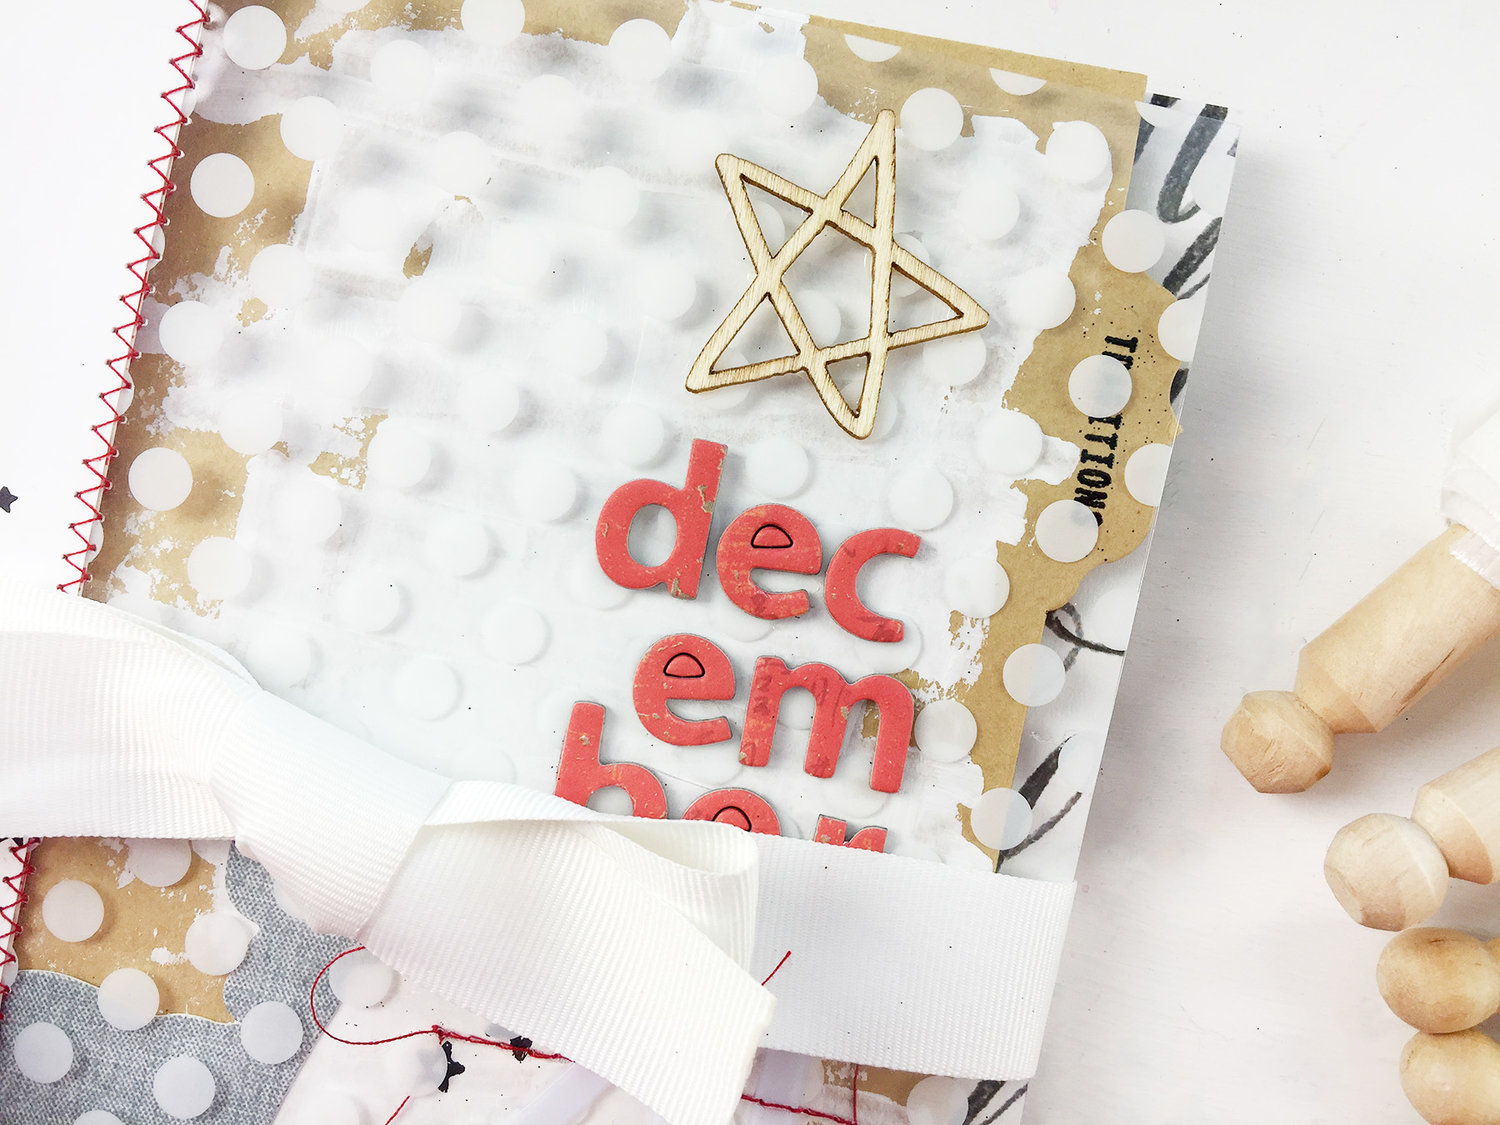 Larkindesign #scrappyChristmasinJuly | December DailyISH 2011 Pt 03